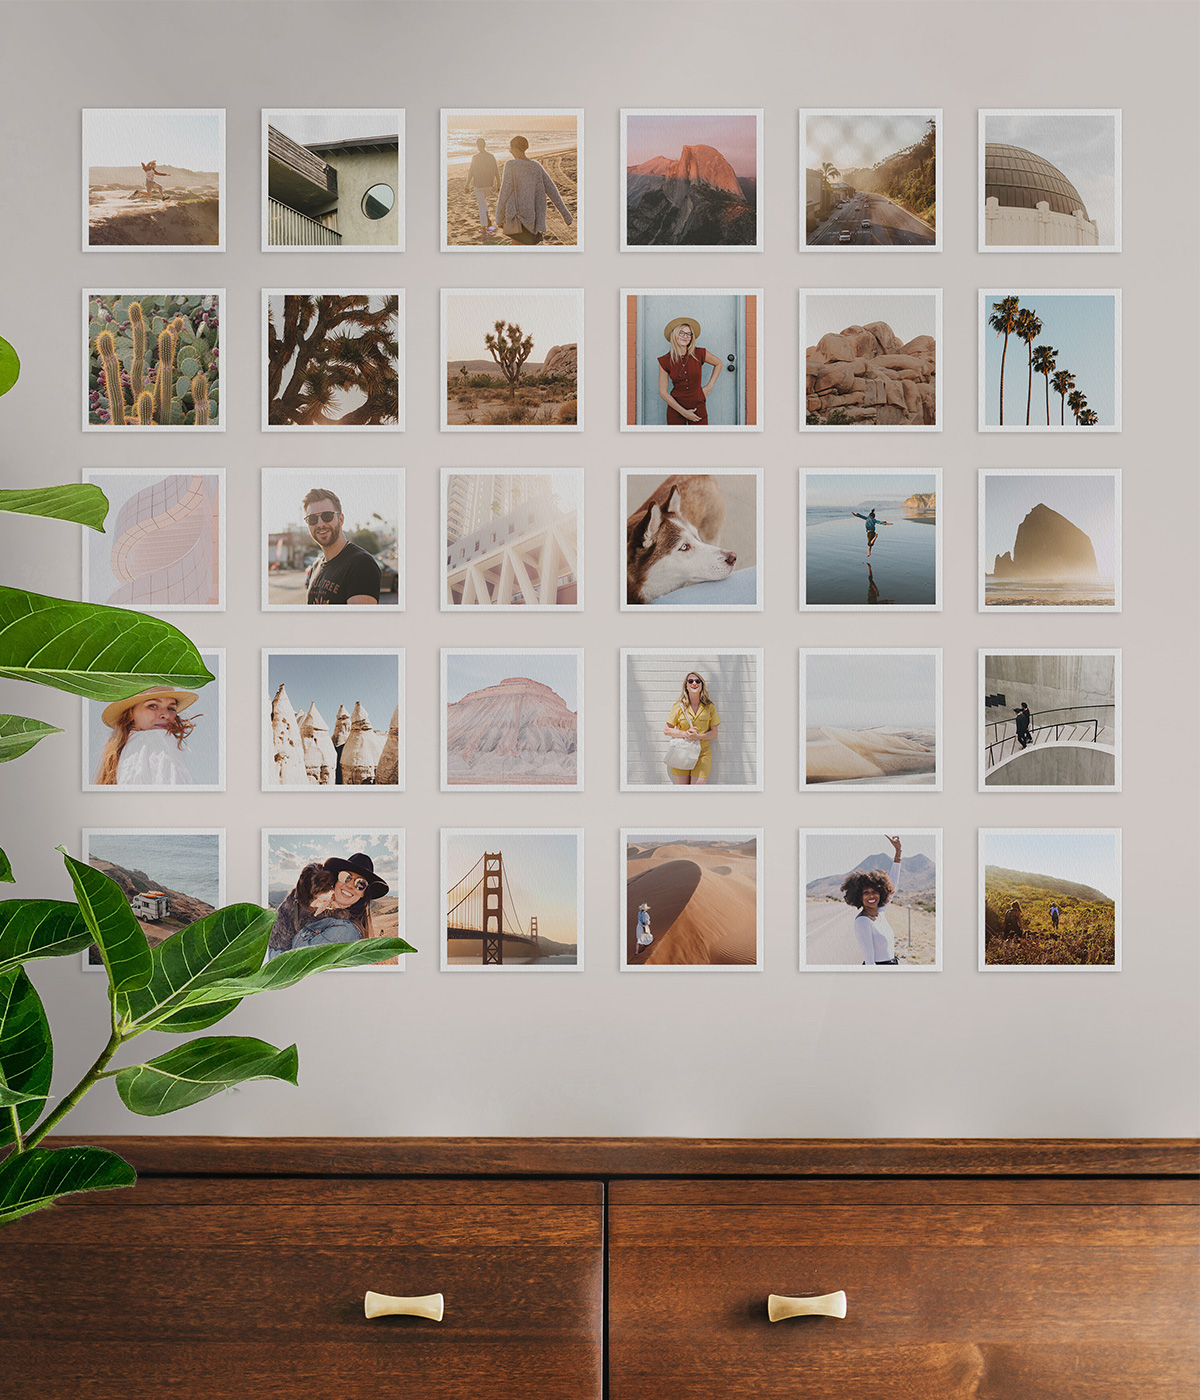 Grid of square photo prints on wall of home